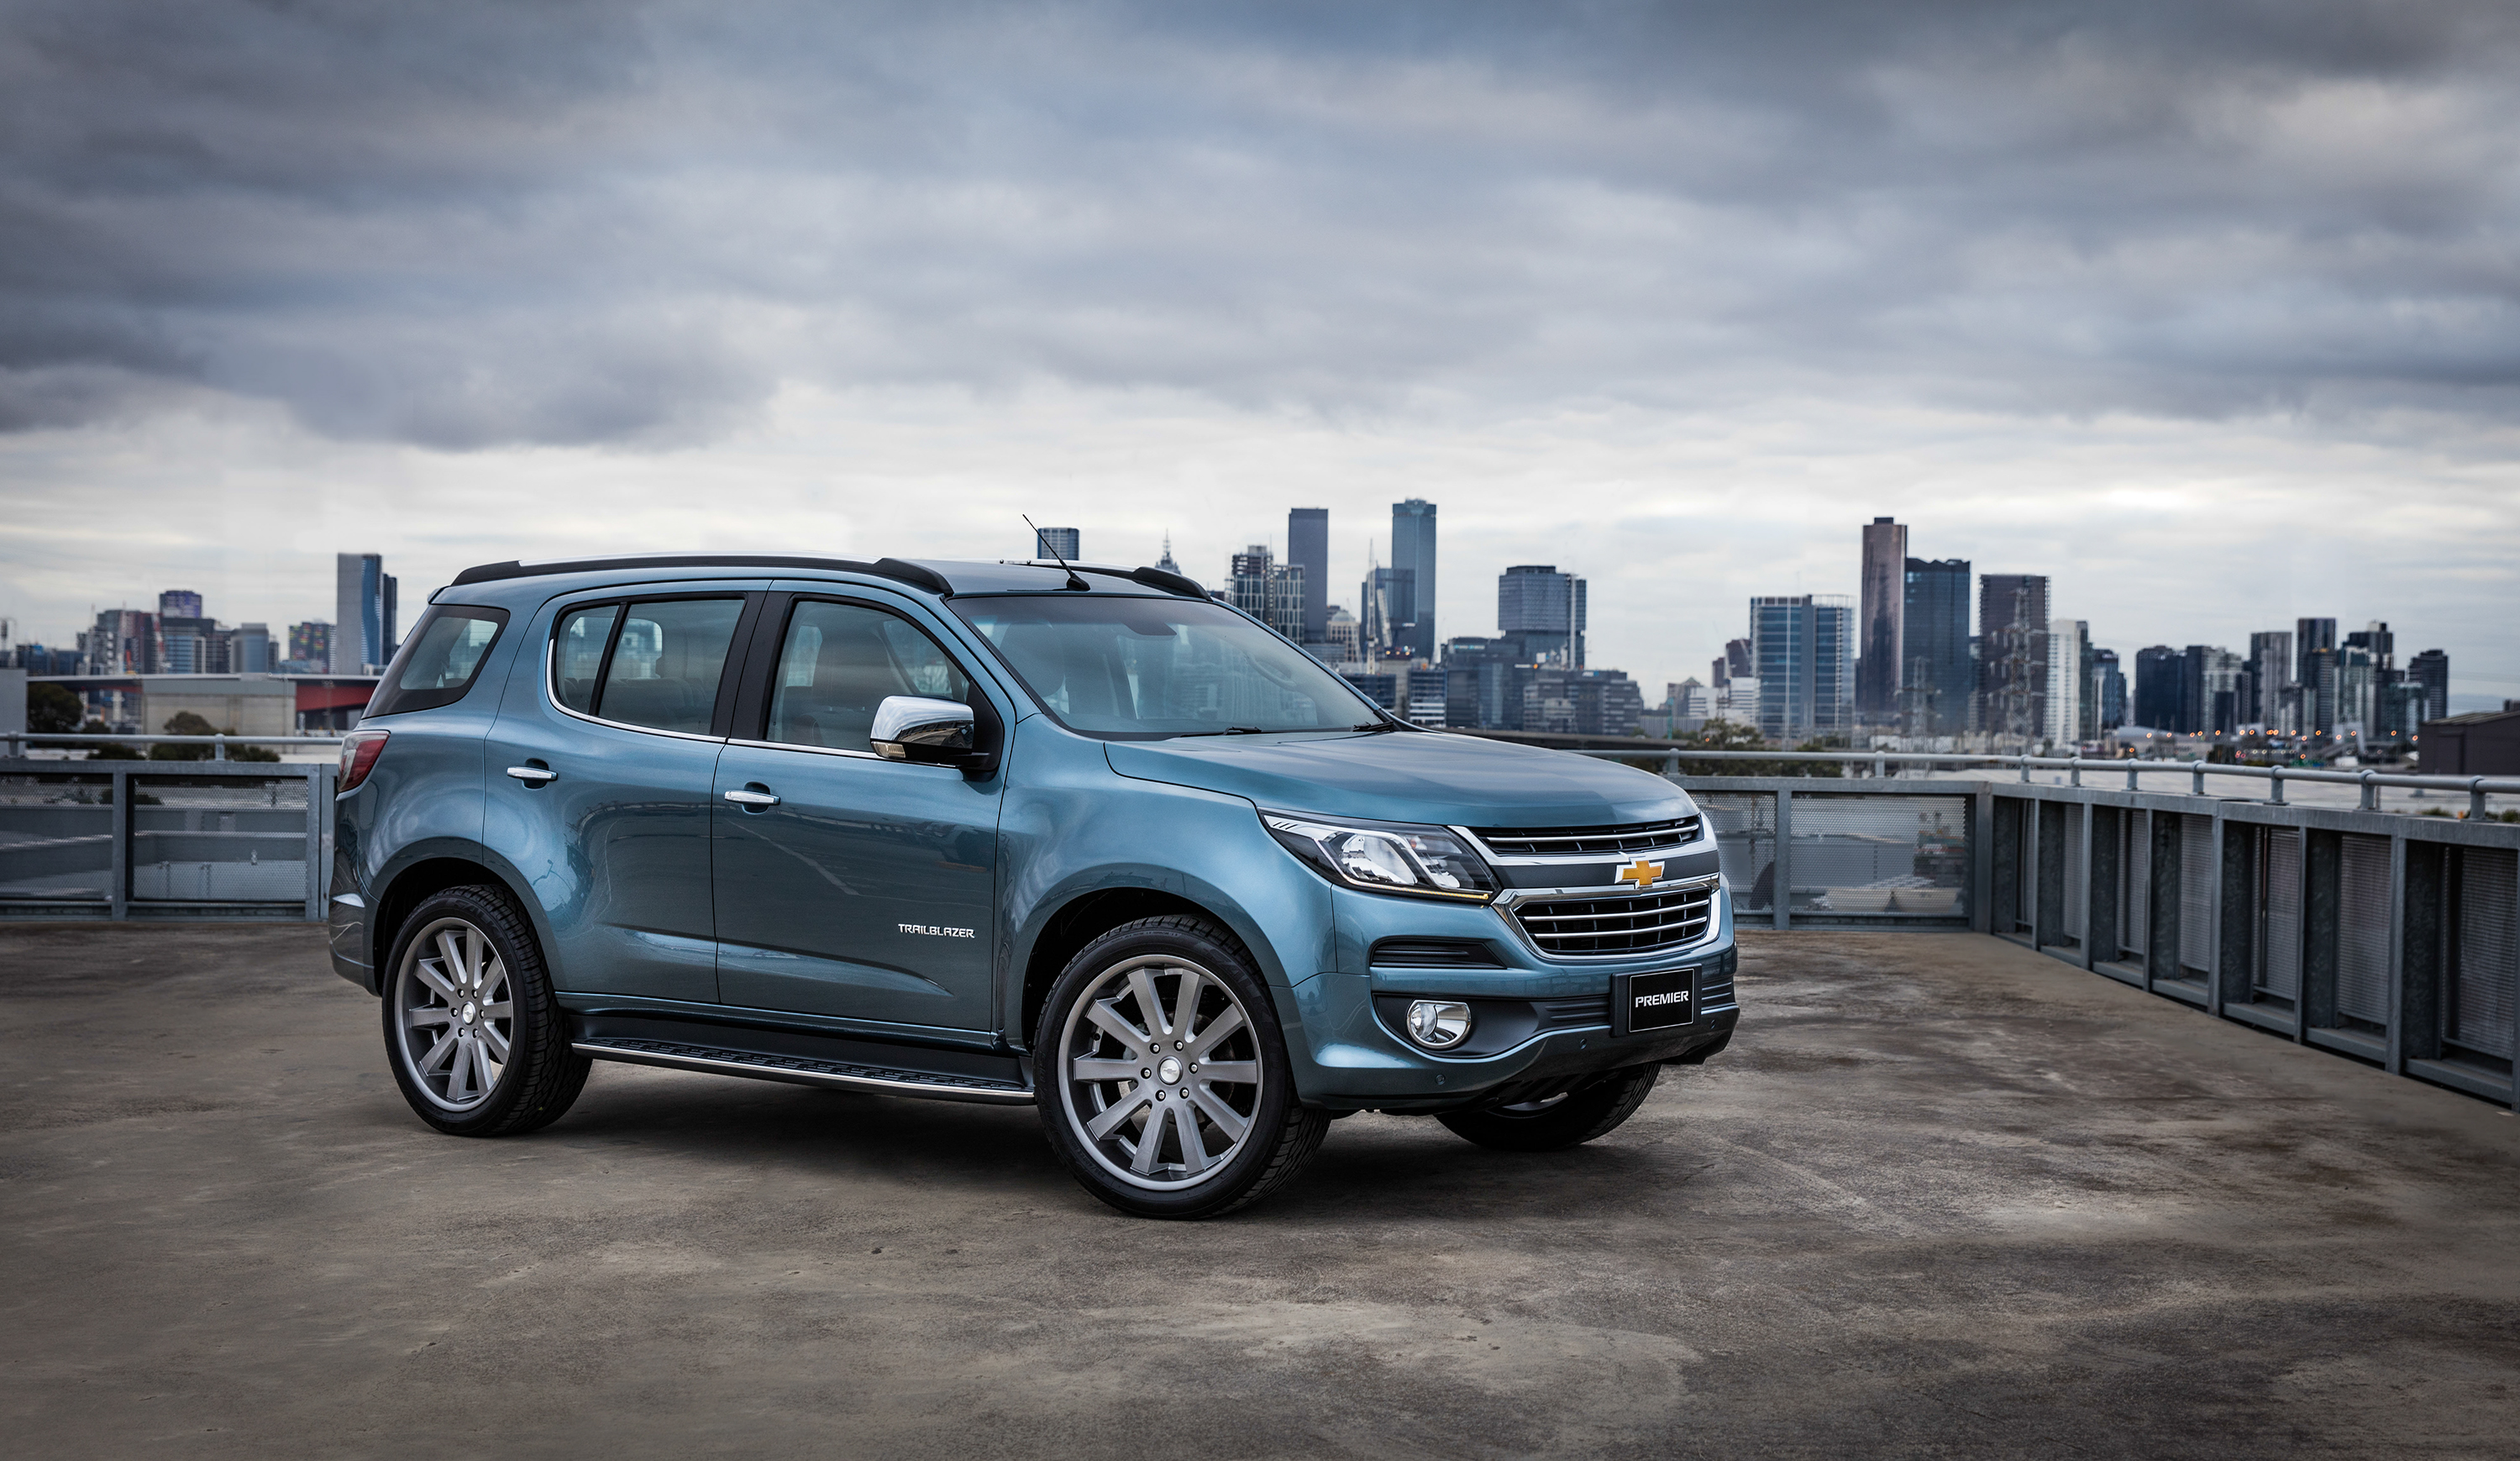 2016 Chevy Trailblazer >> 2016 Chevrolet Trailblazer Premier Concept Top Speed